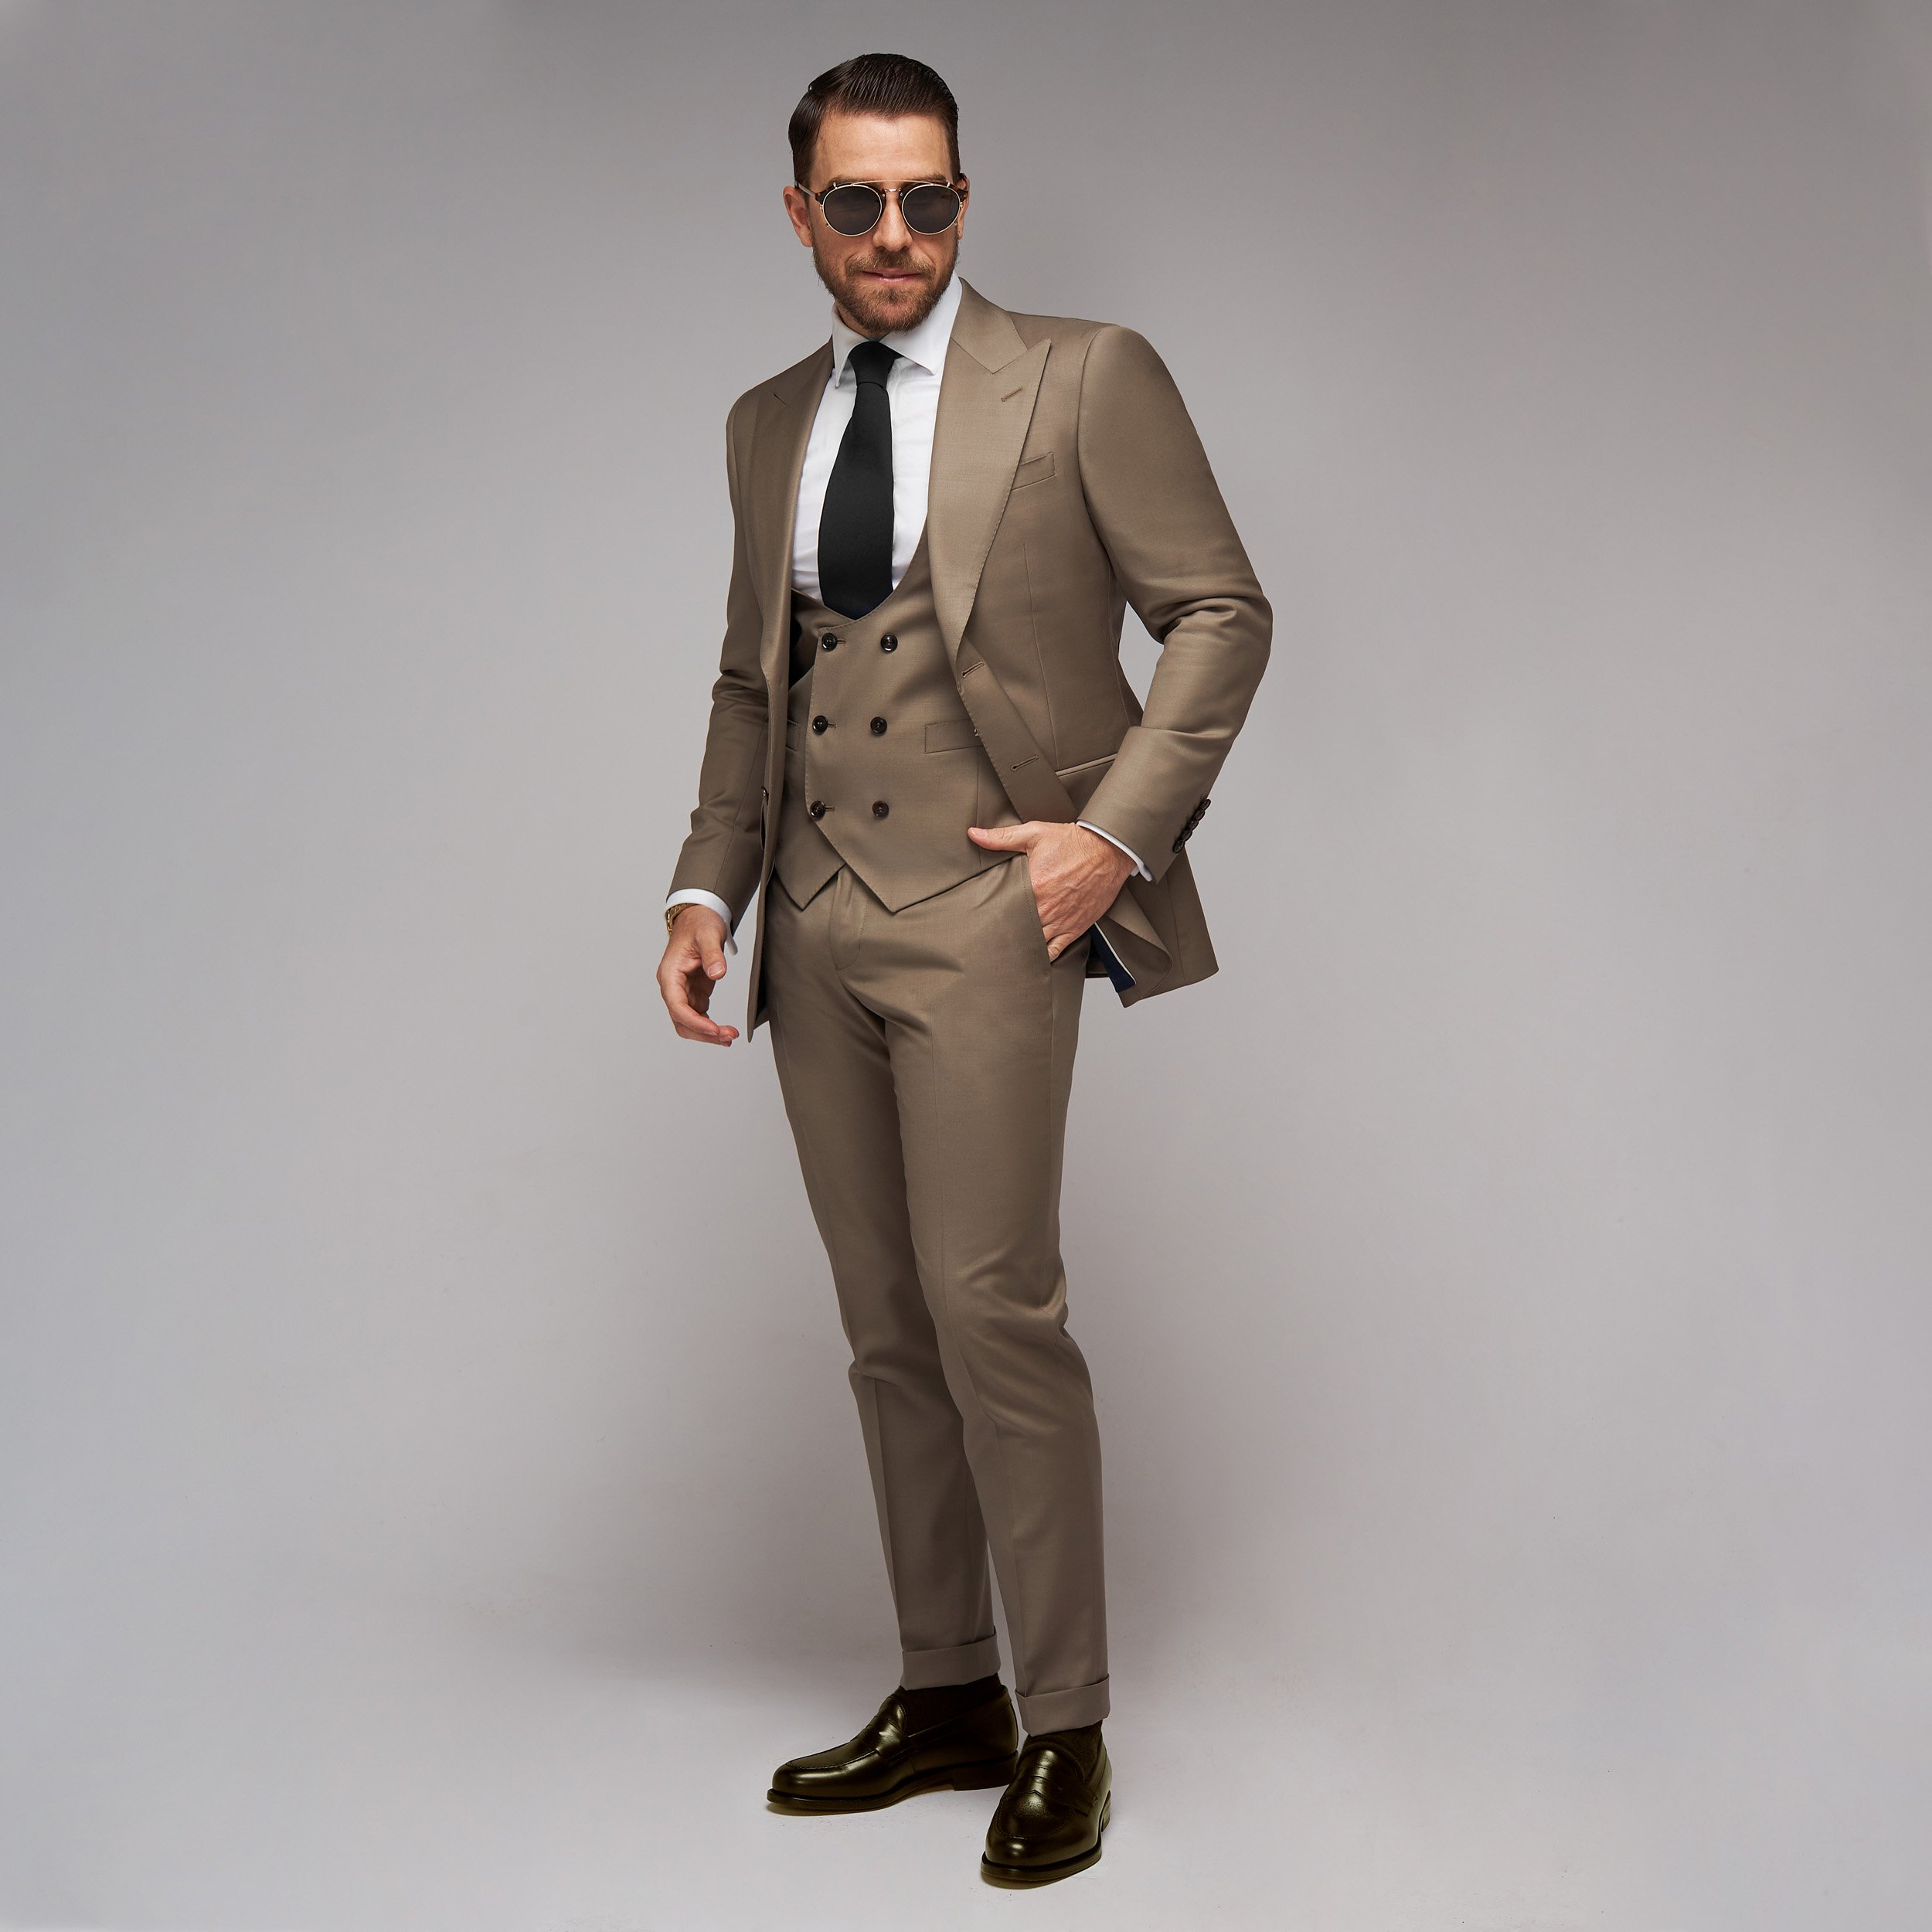 Brent Wilson Binge Business suits Collection